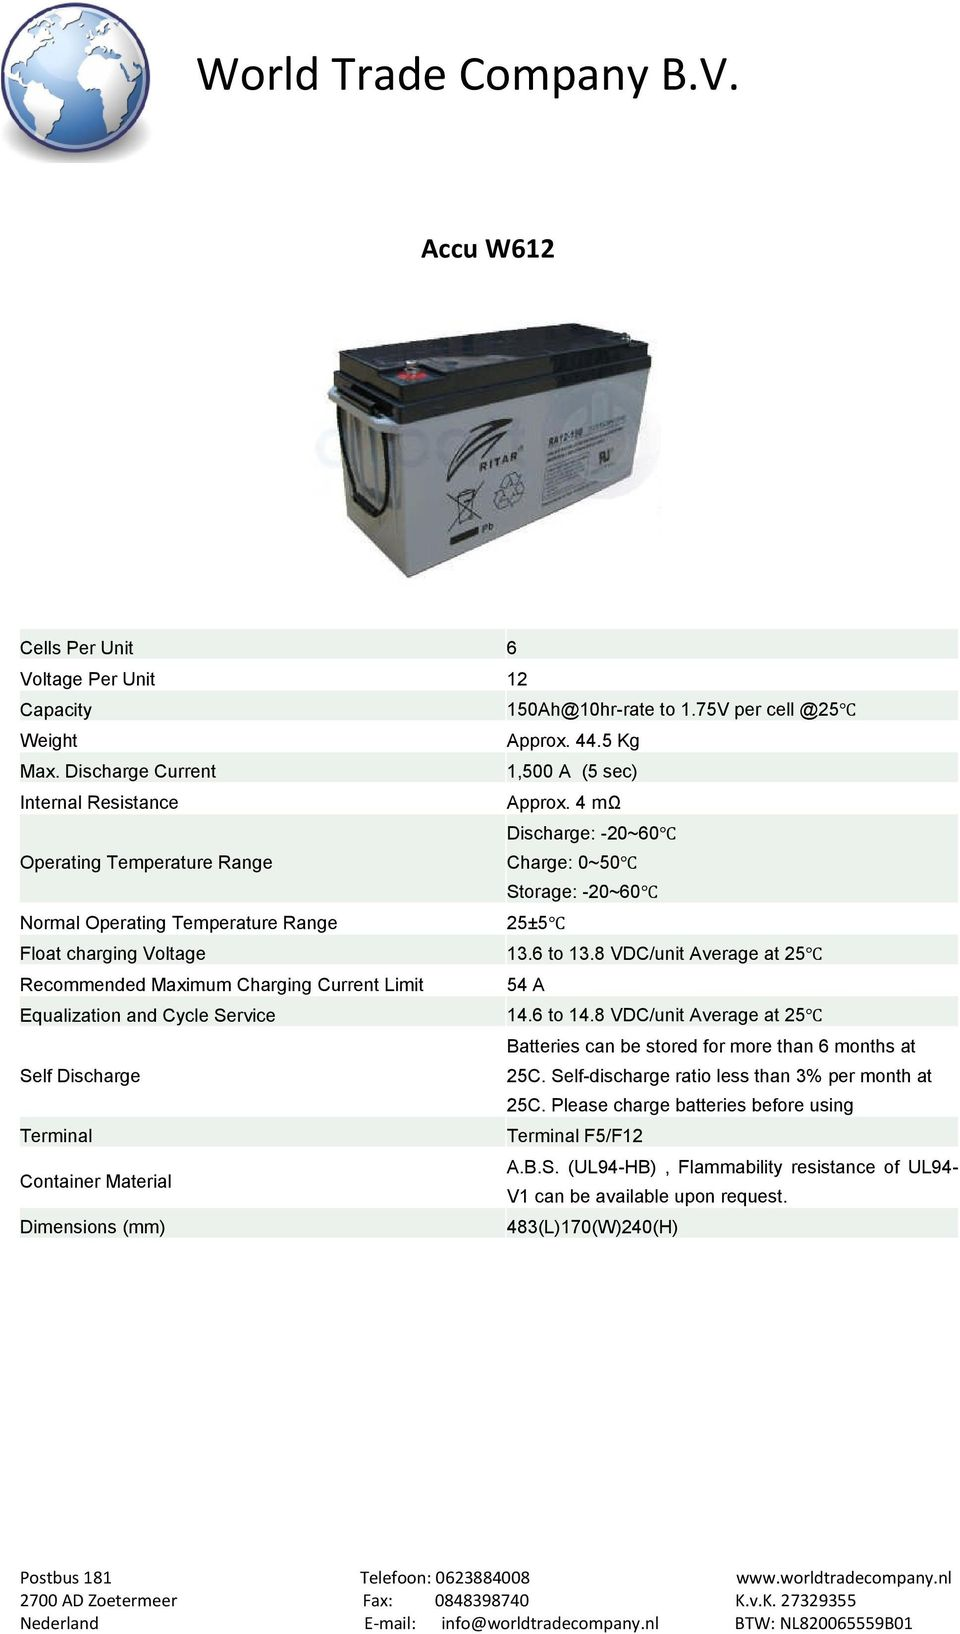 8 VDC/unit Average at 25 Recommended Maximum Charging Current Limit 54 A Equalization and Cycle Service 14.6 to 14.